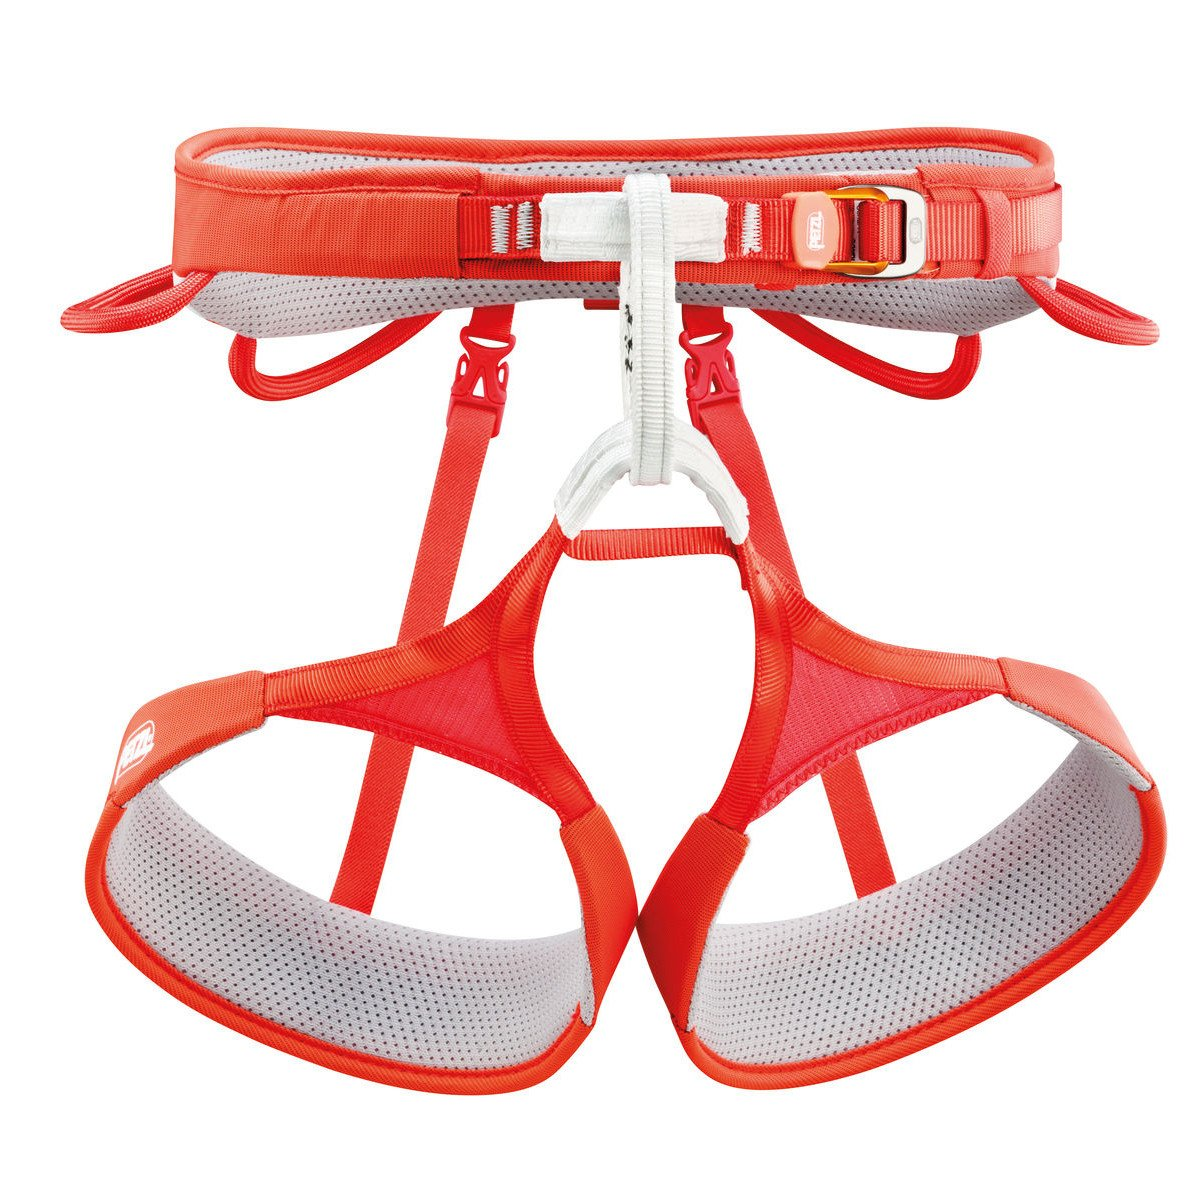 Petzl Hirundos Harness, front view, in Red, orange and white colours